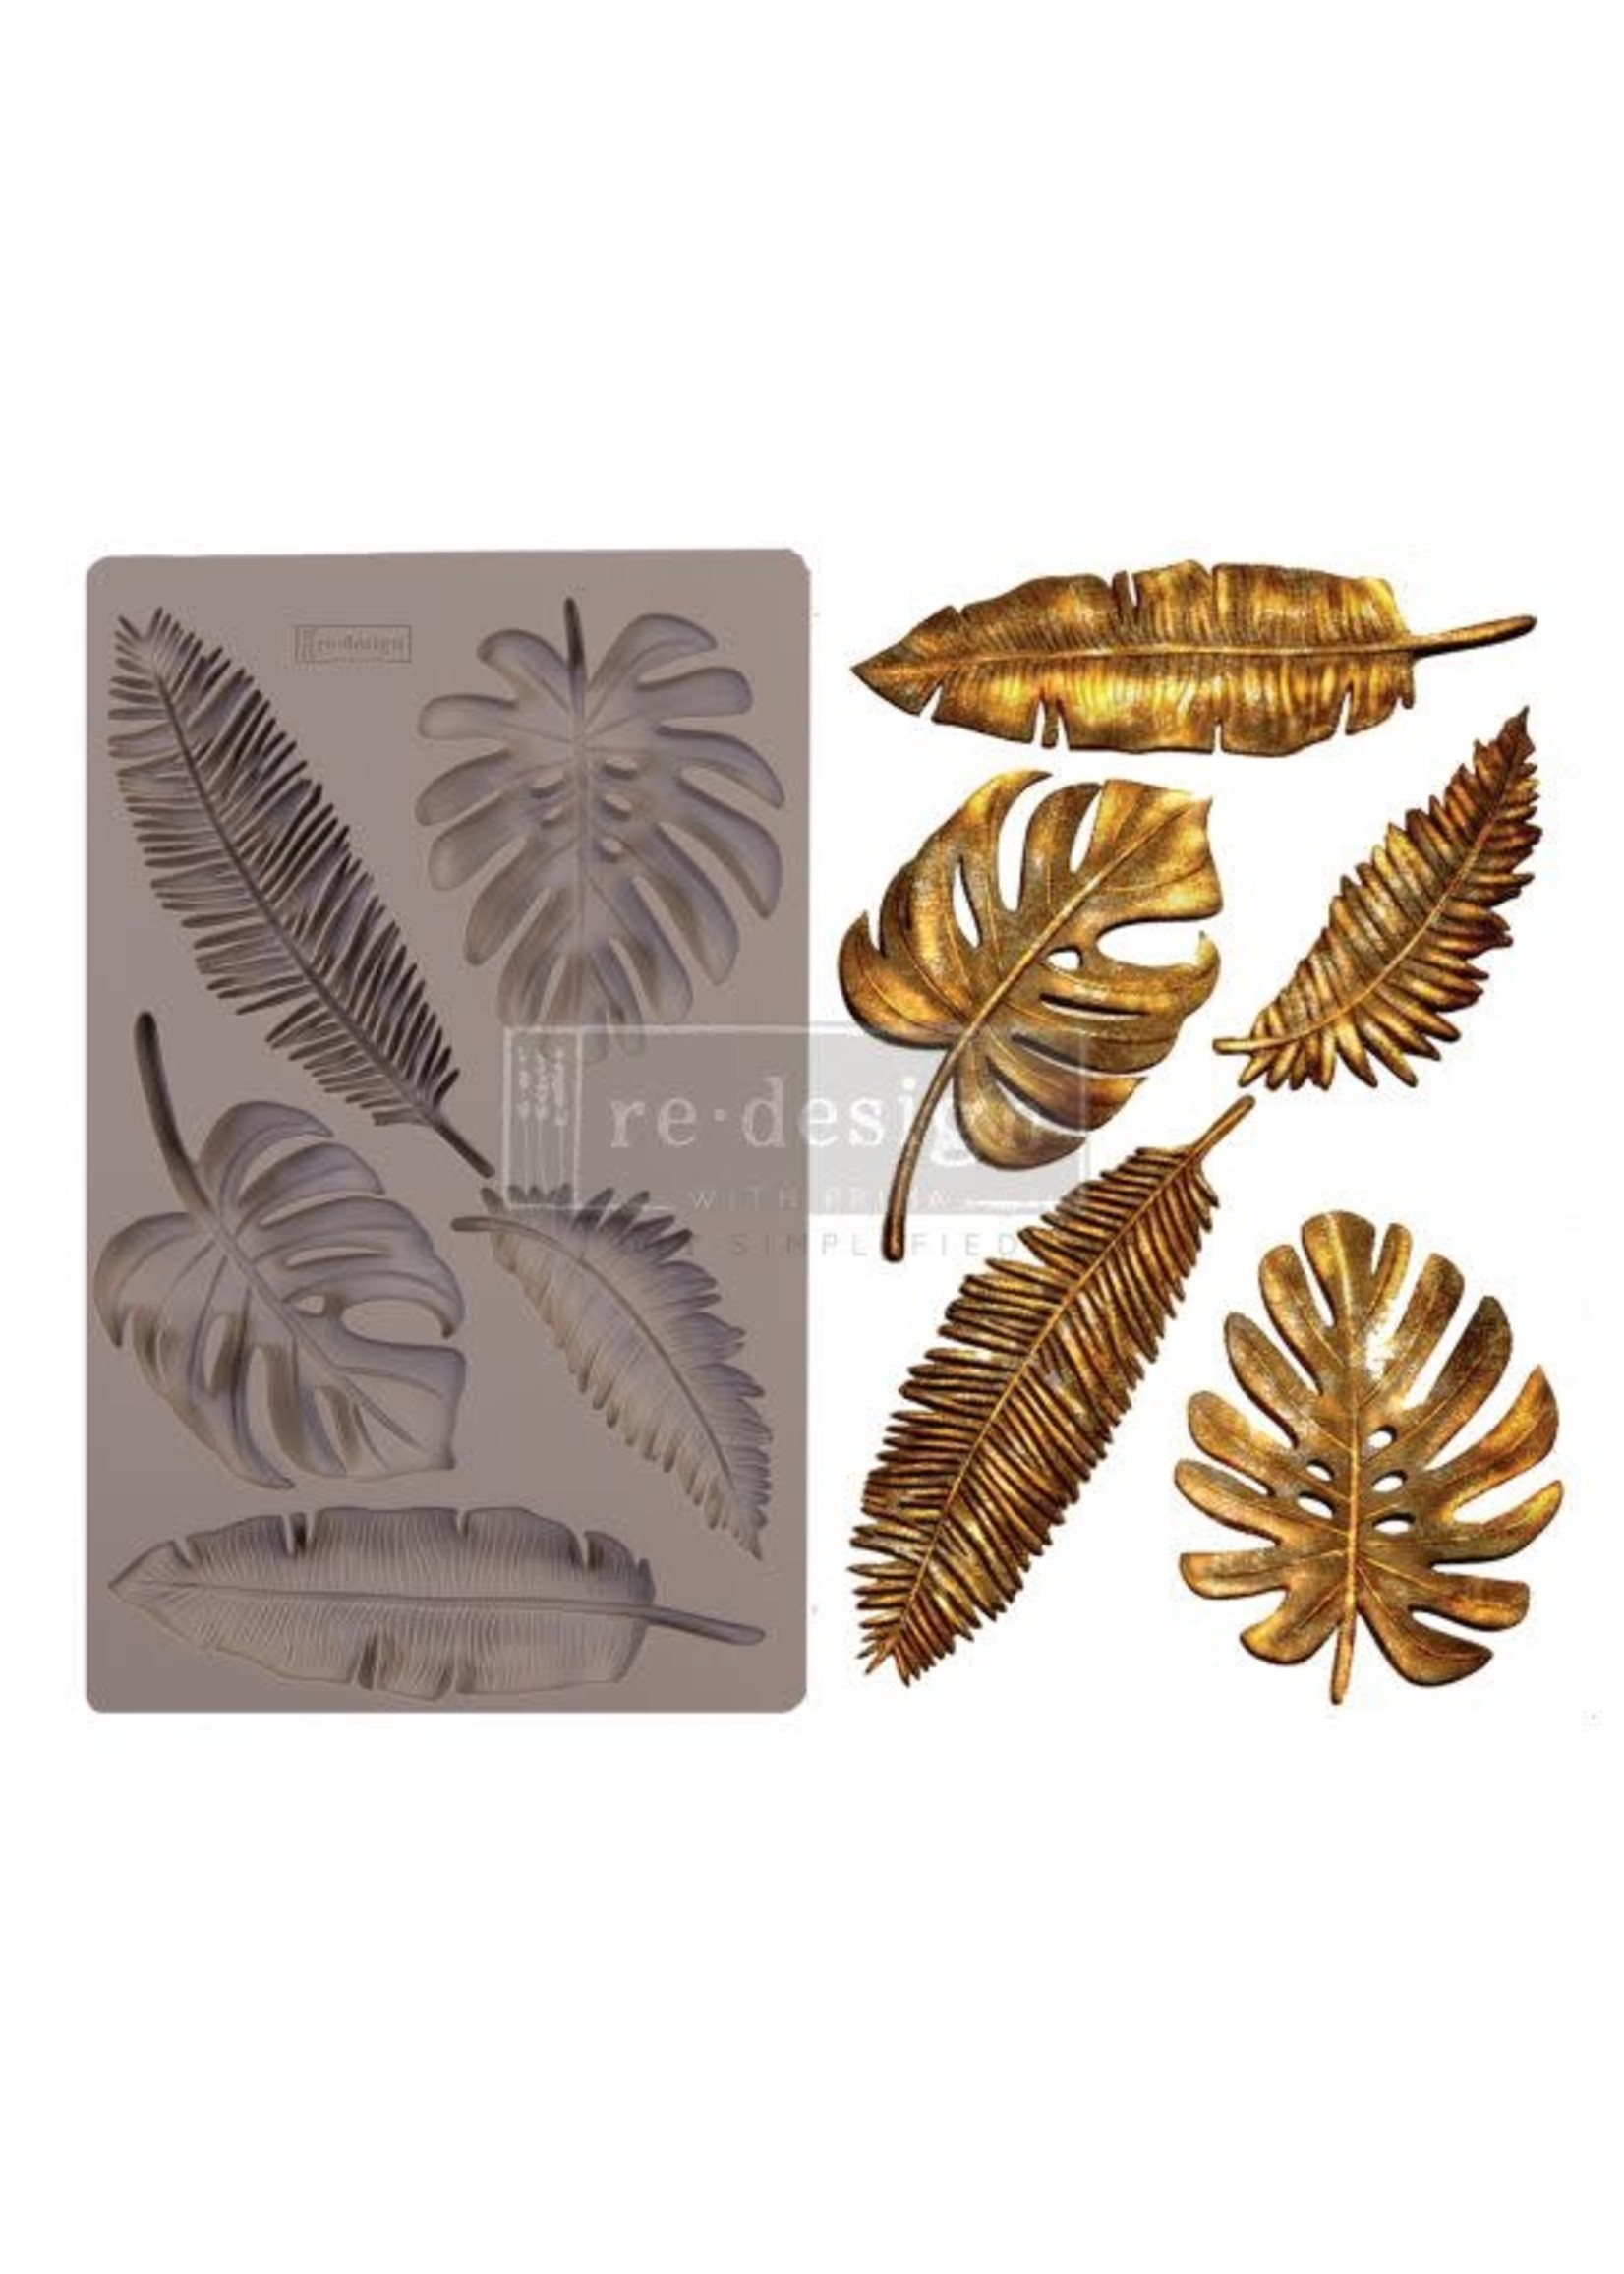 Re-Design with Prima® Monstera Redesign with Prima® Decor Moulds®